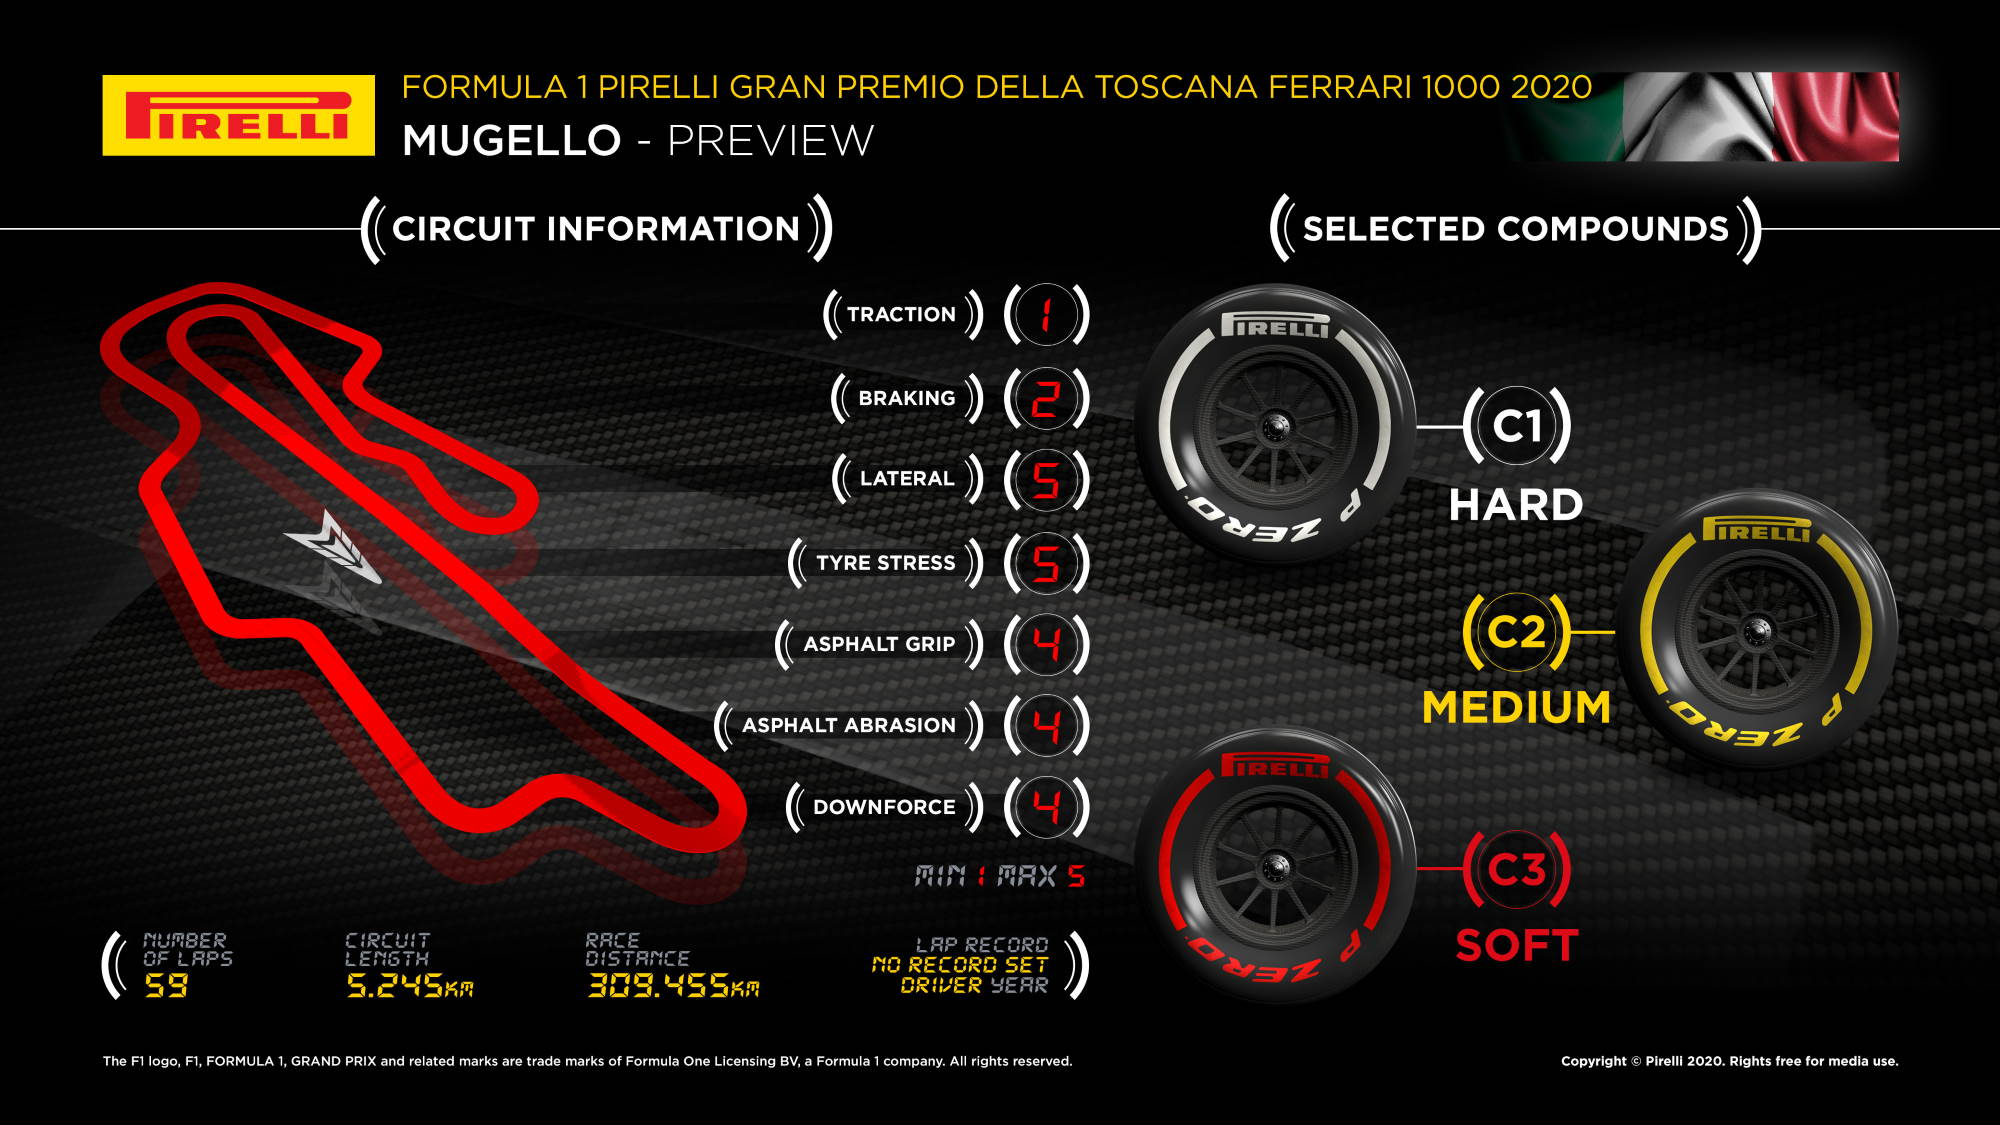 2020 Tuscan GP preview – First F1 race in Mugello